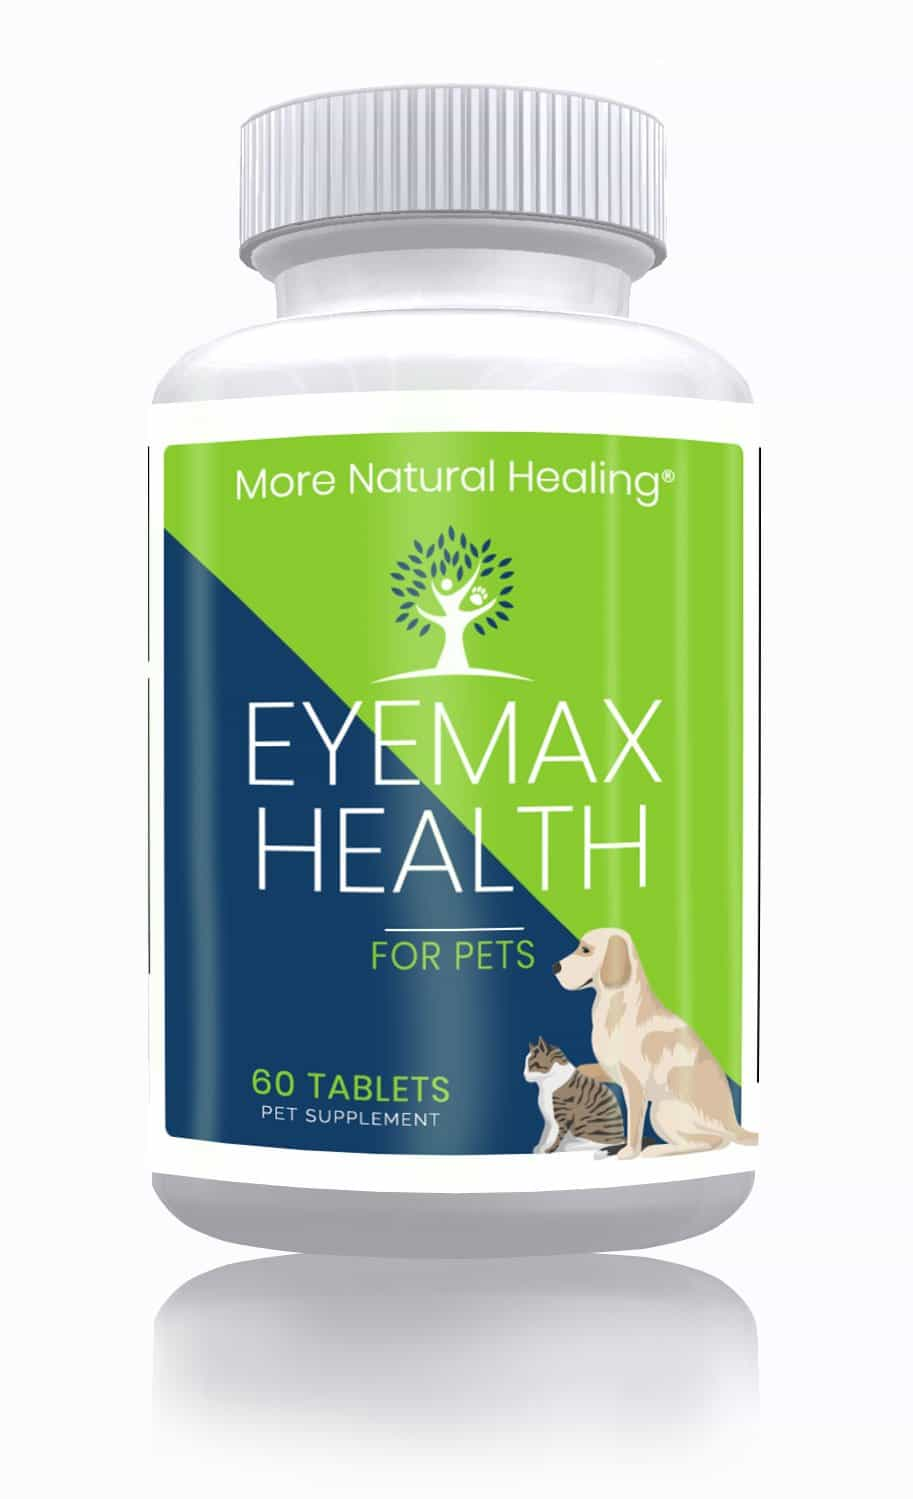 EyeMax Health for Pets - More Natural Healing